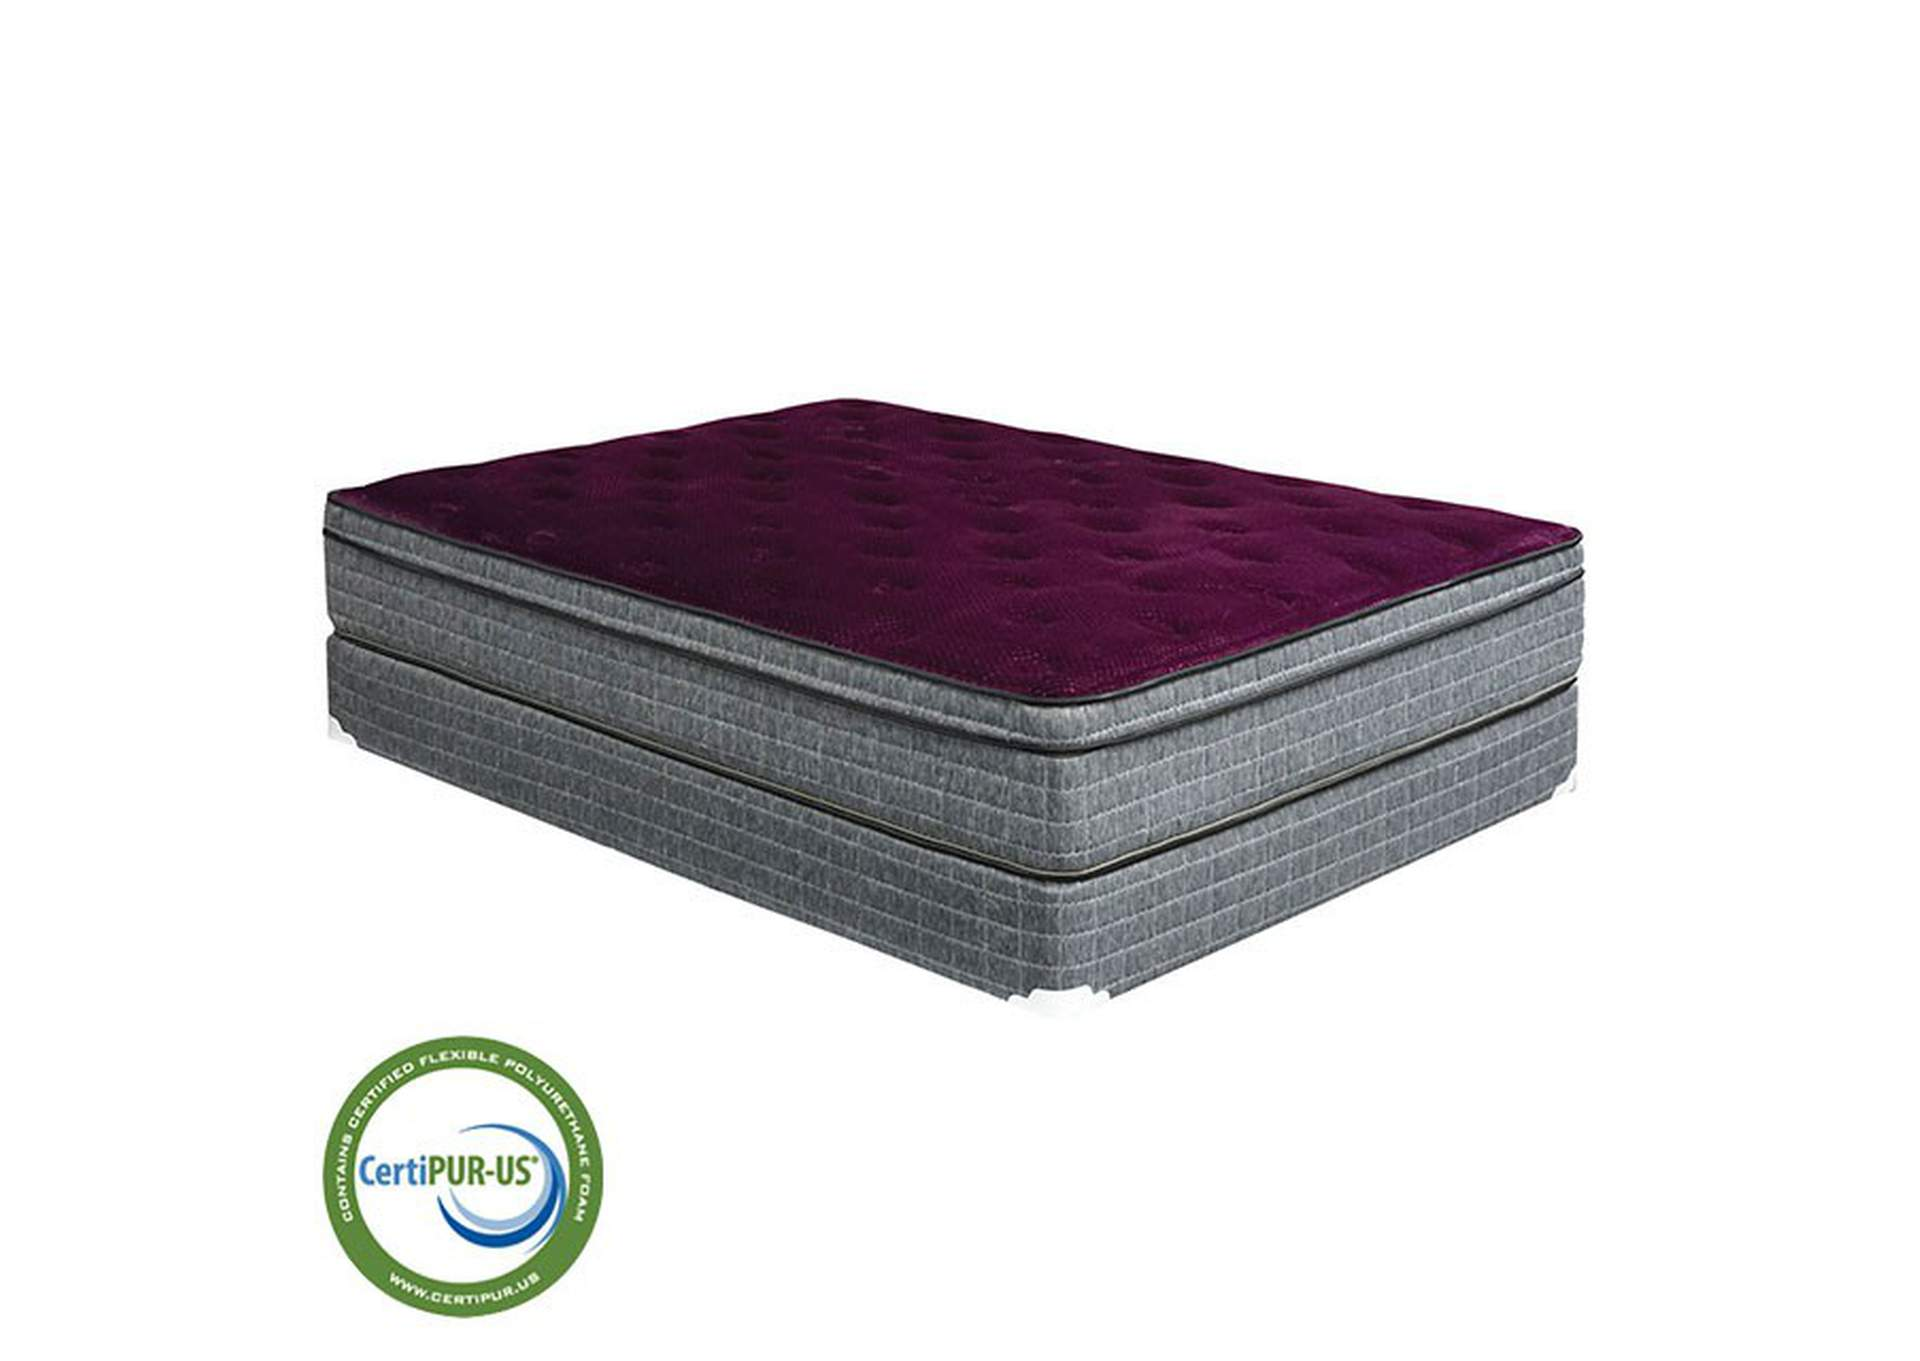 Minnetonka Full Size Mattress,Furniture of America